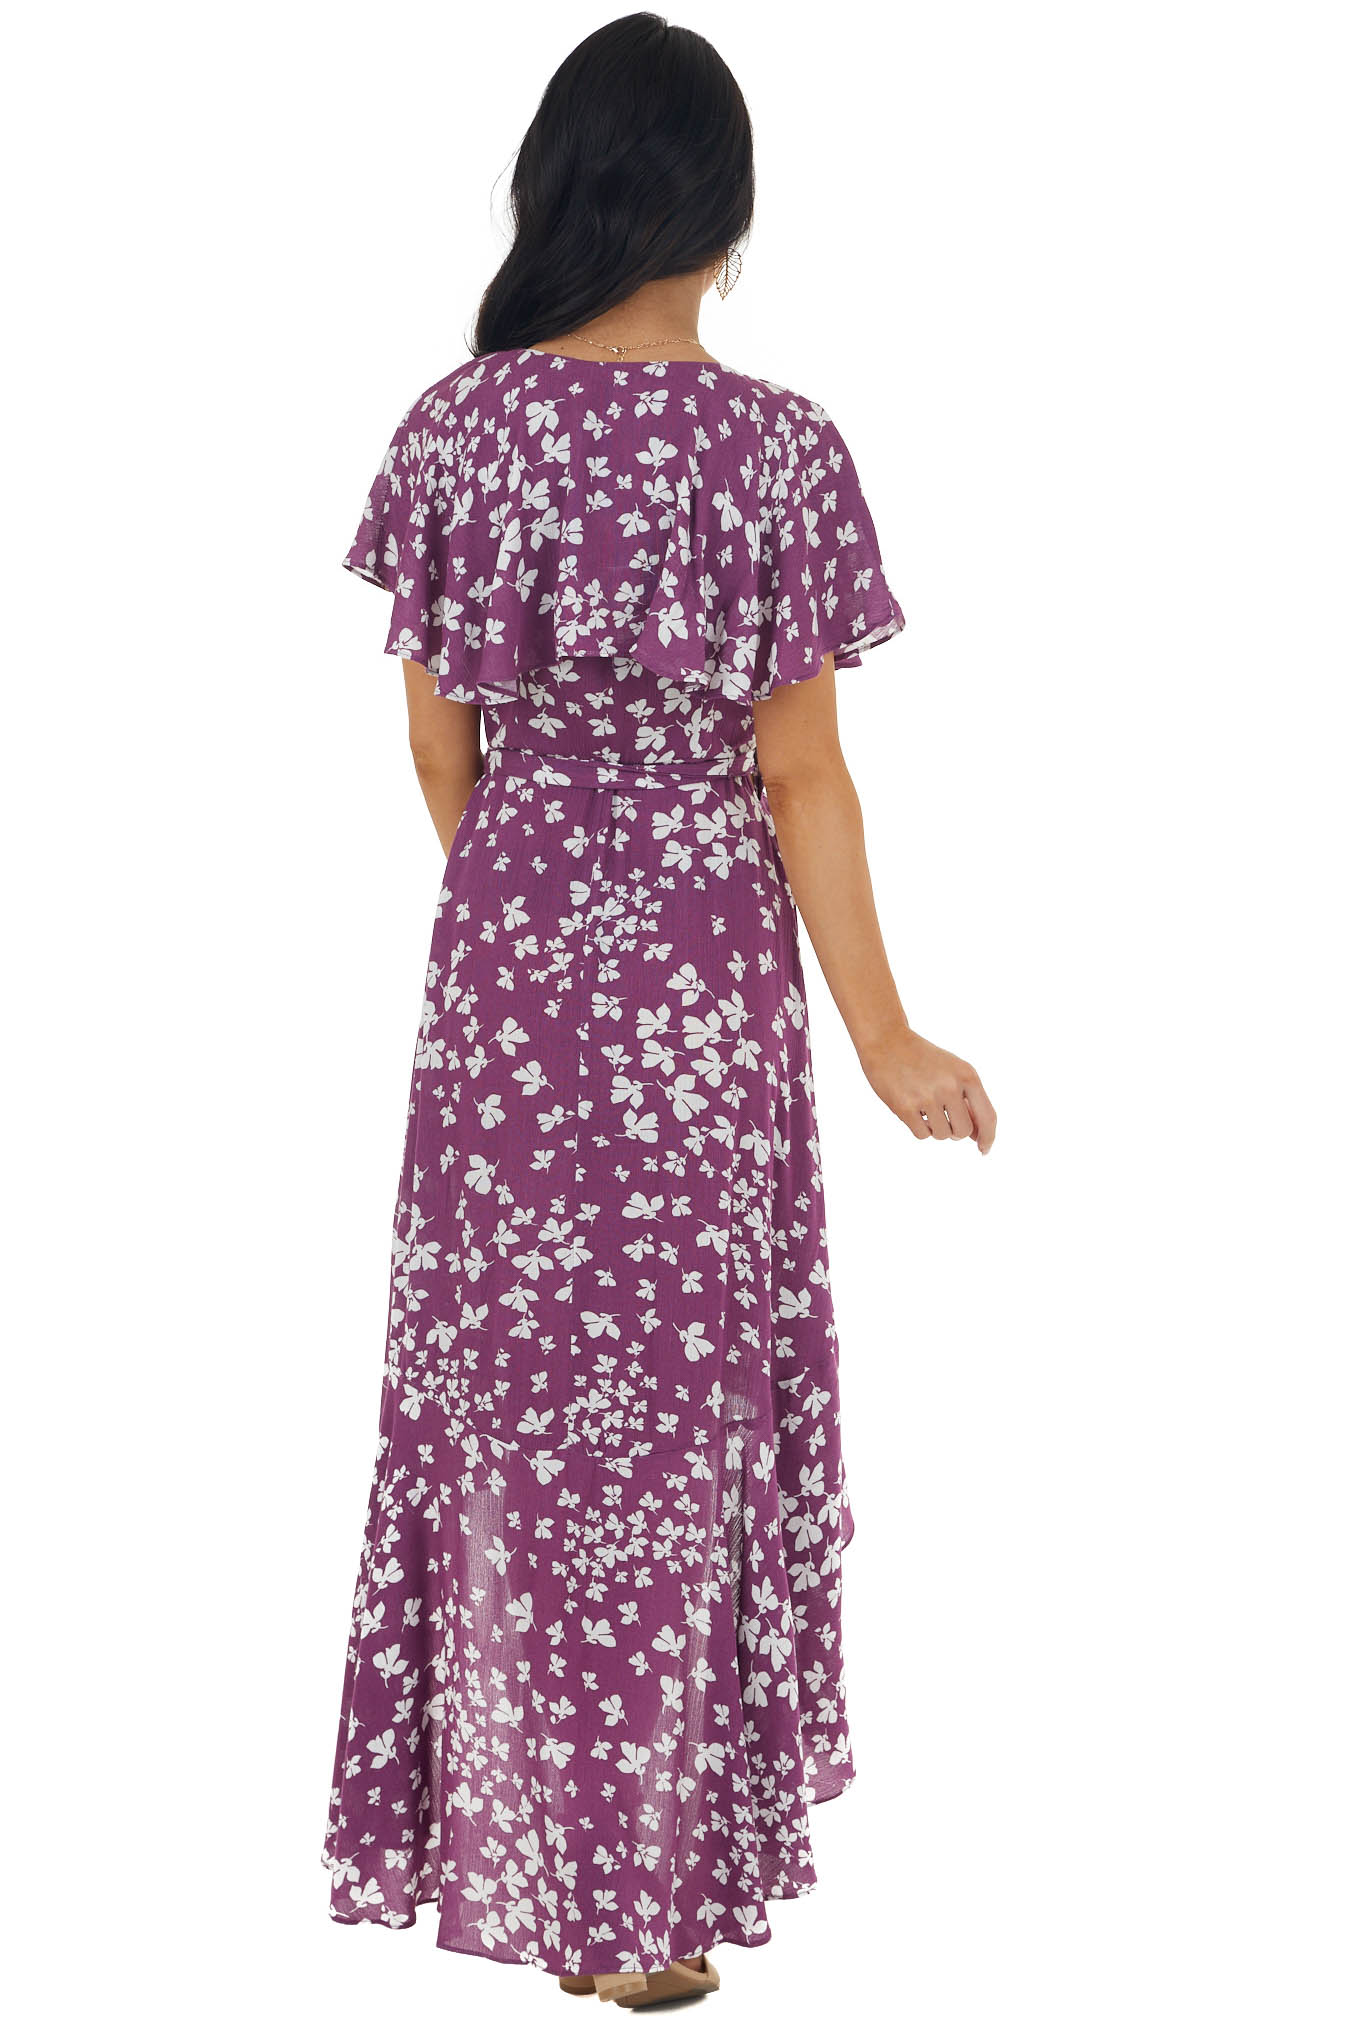 Berry and Ivory Floral Print Maxi Dress